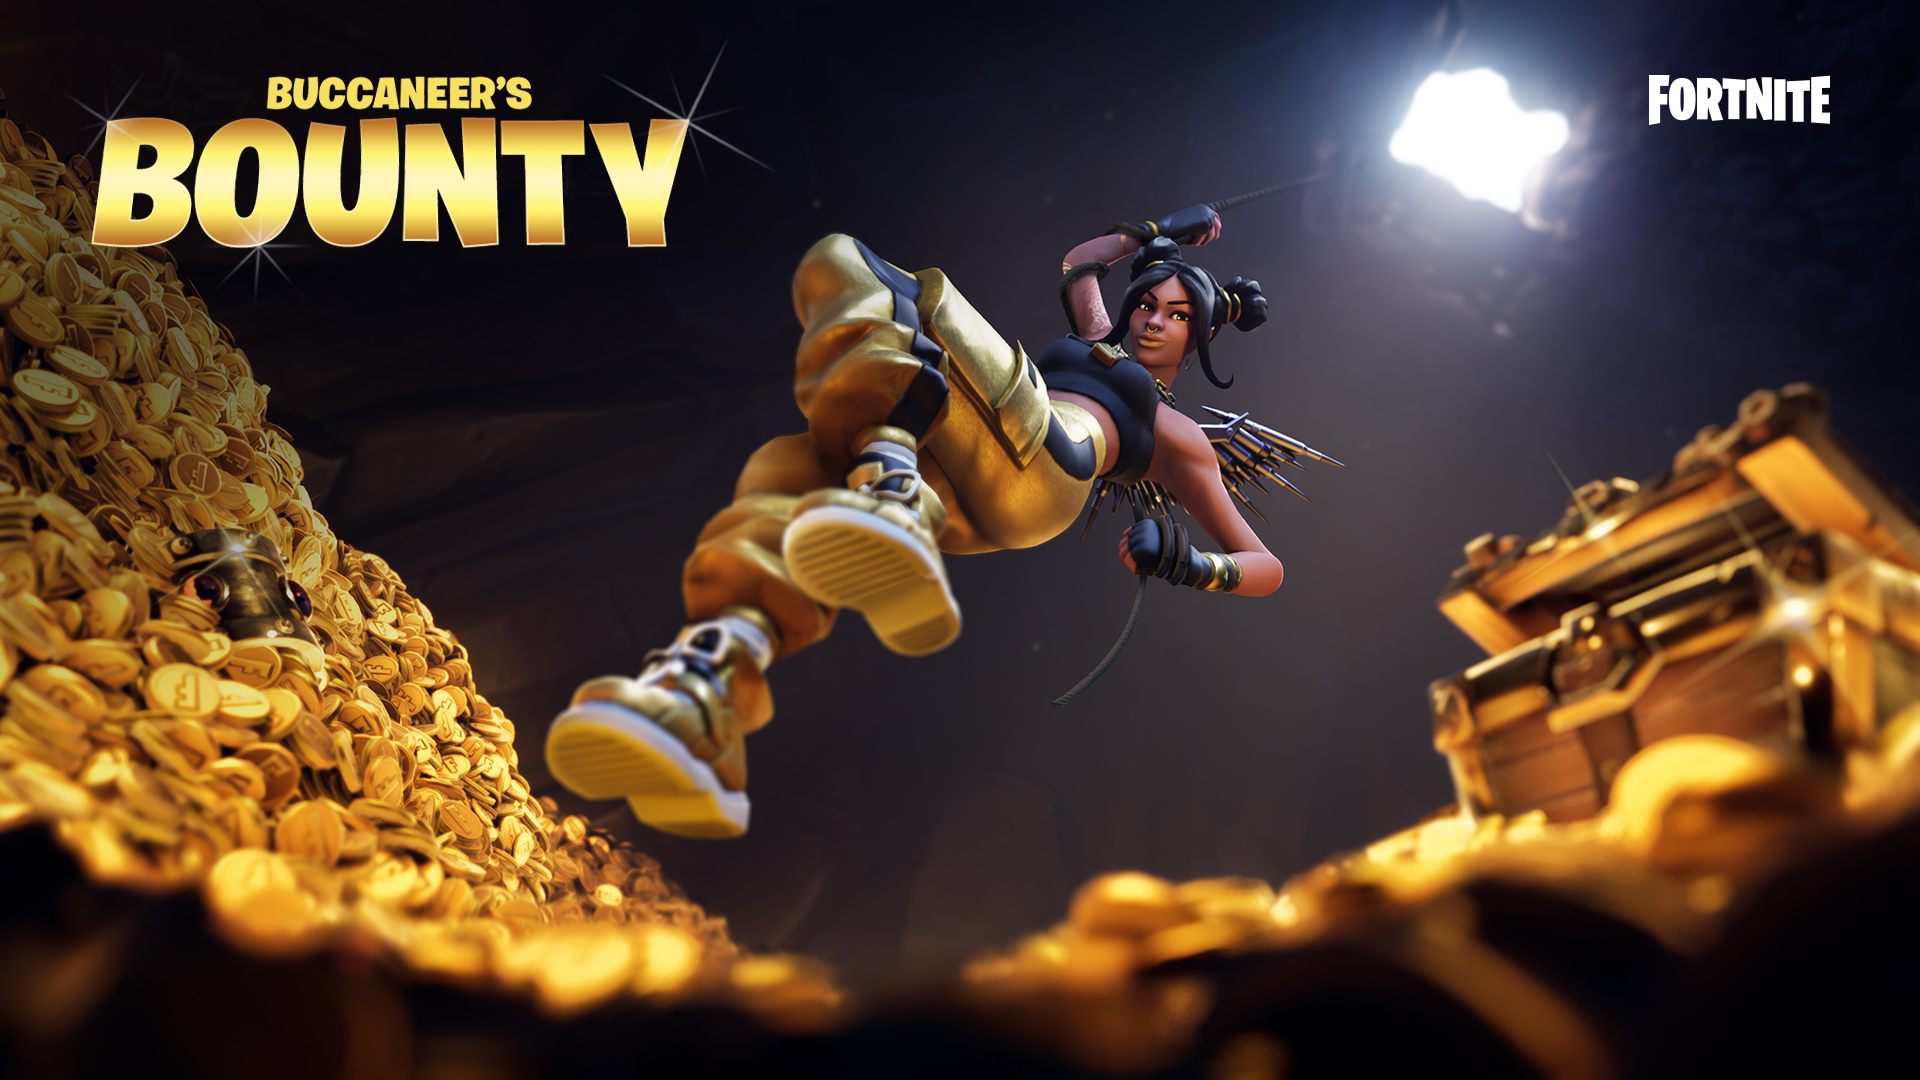 Fortnite Event Buccaneers Bounty Will Bring Free Challenges